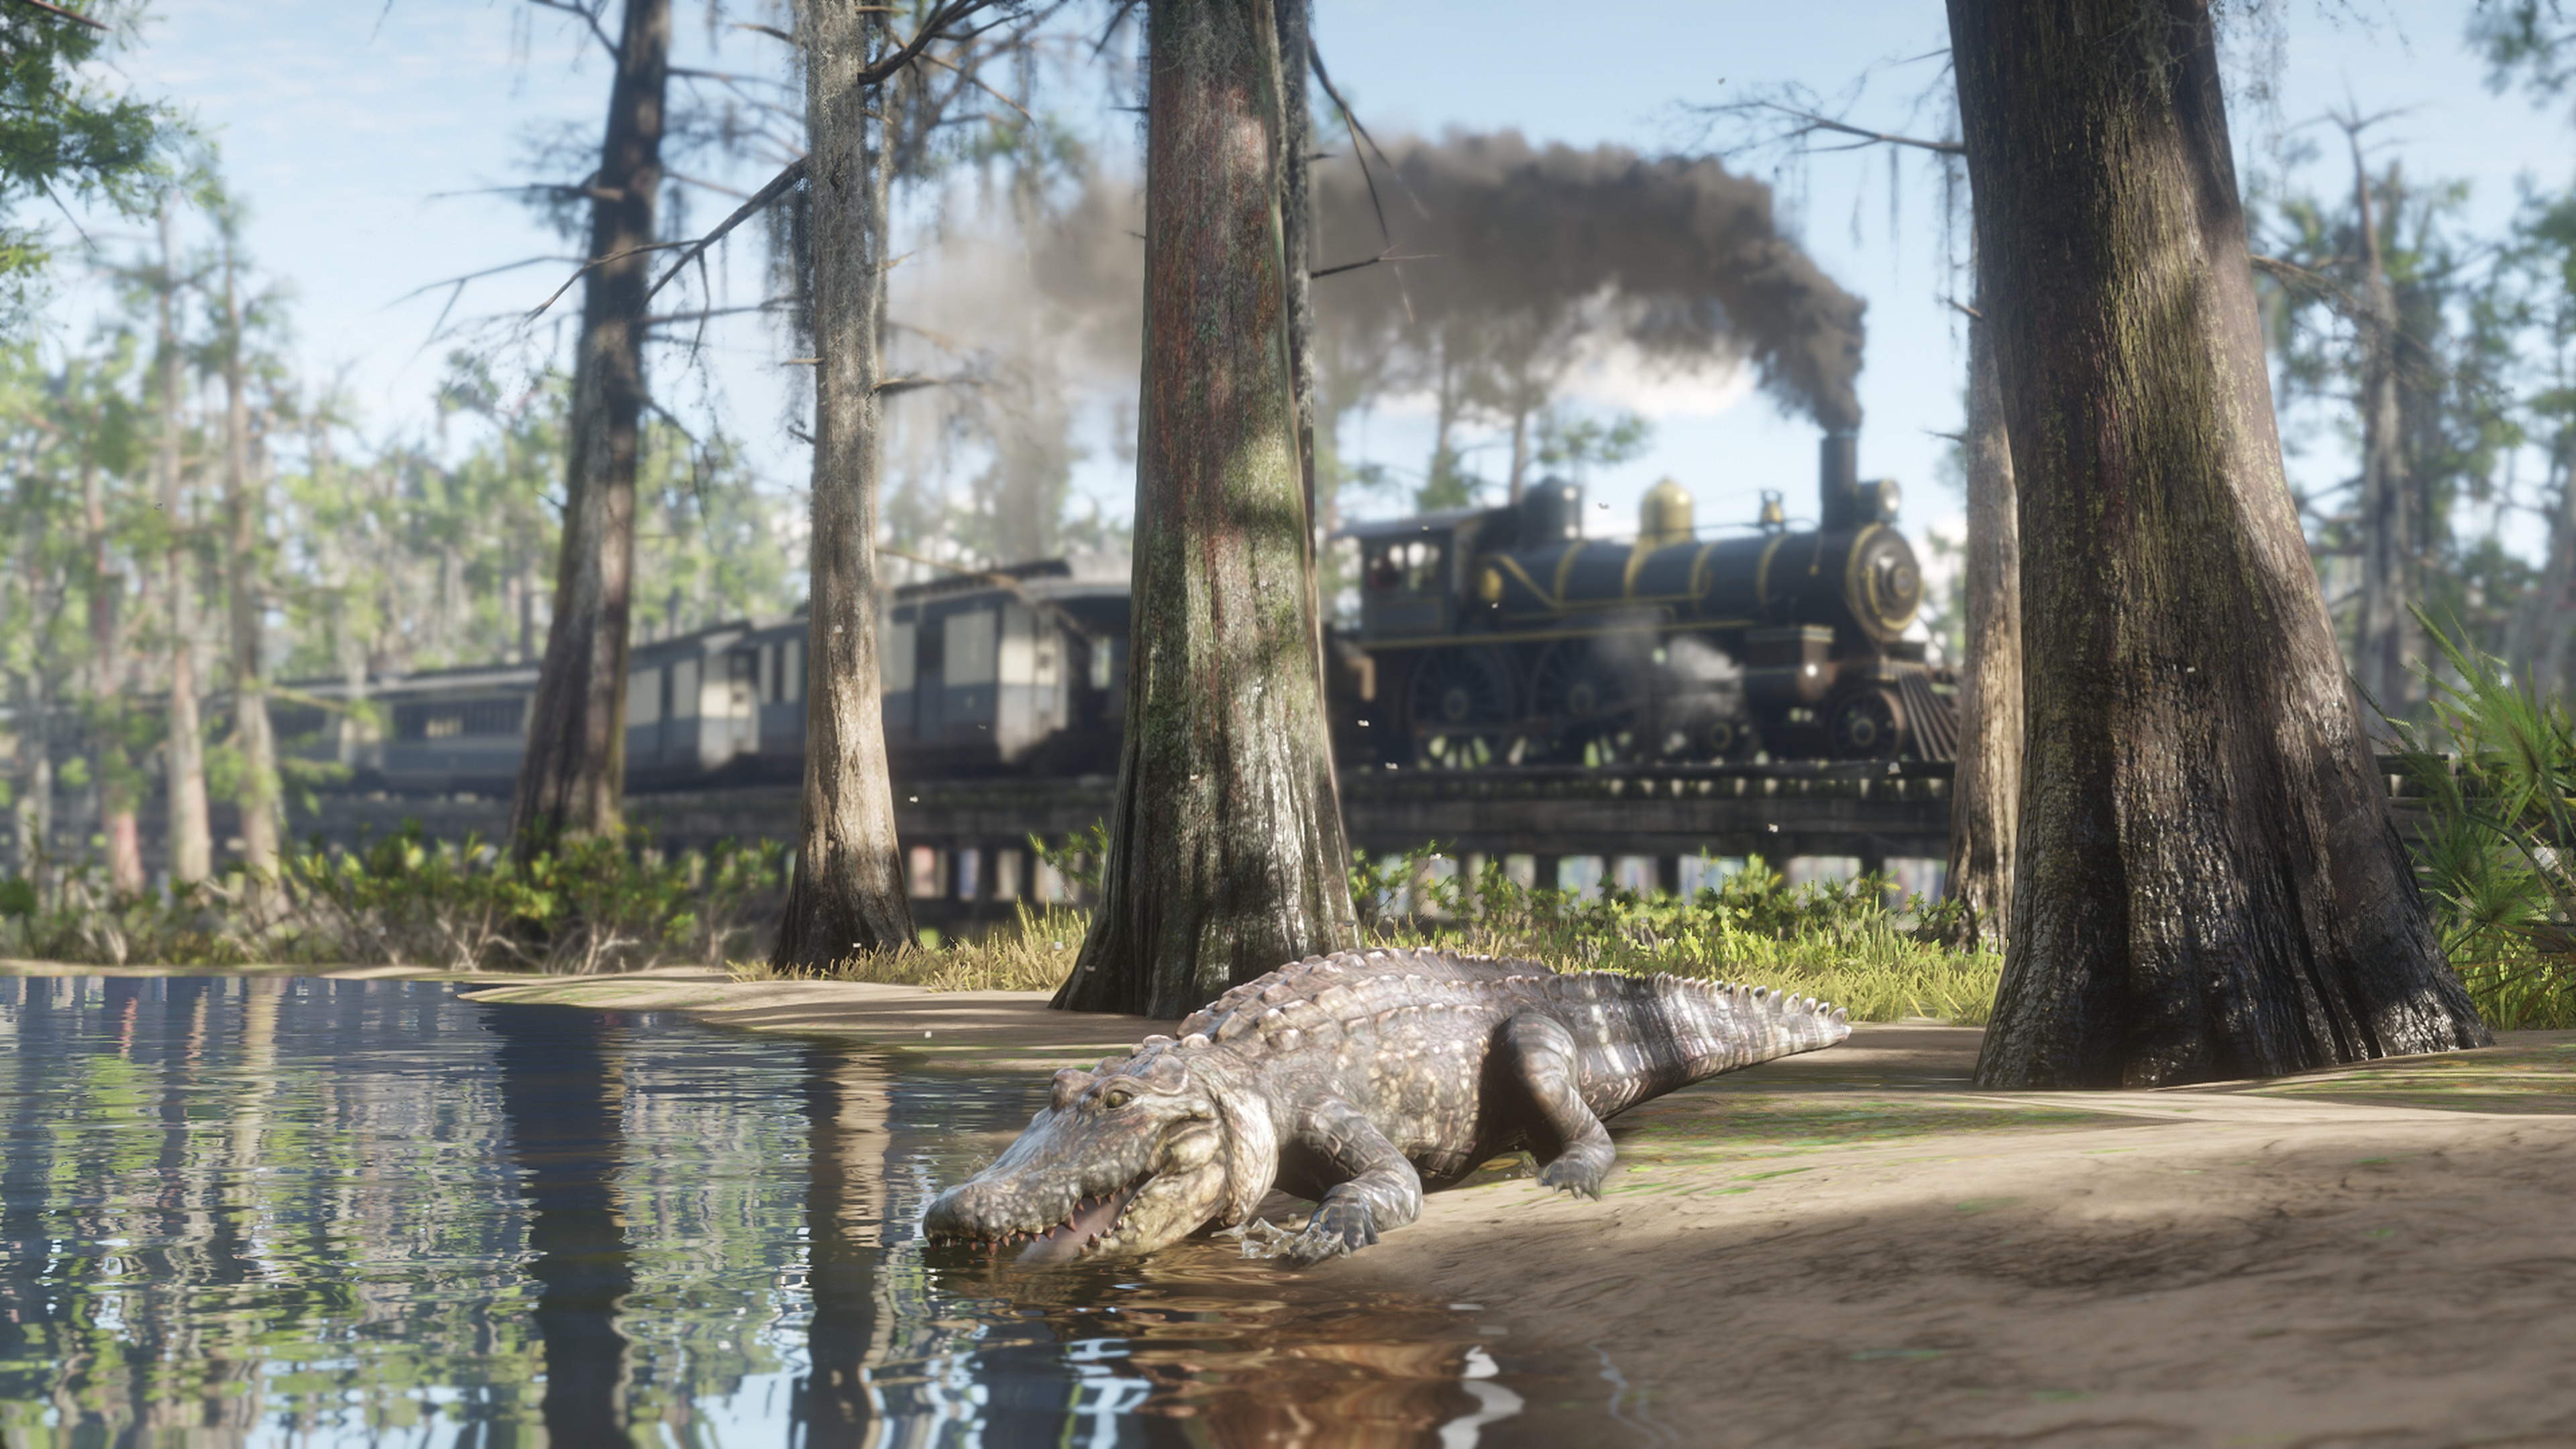 Red Dead Redemption 2 where to find the derailed train